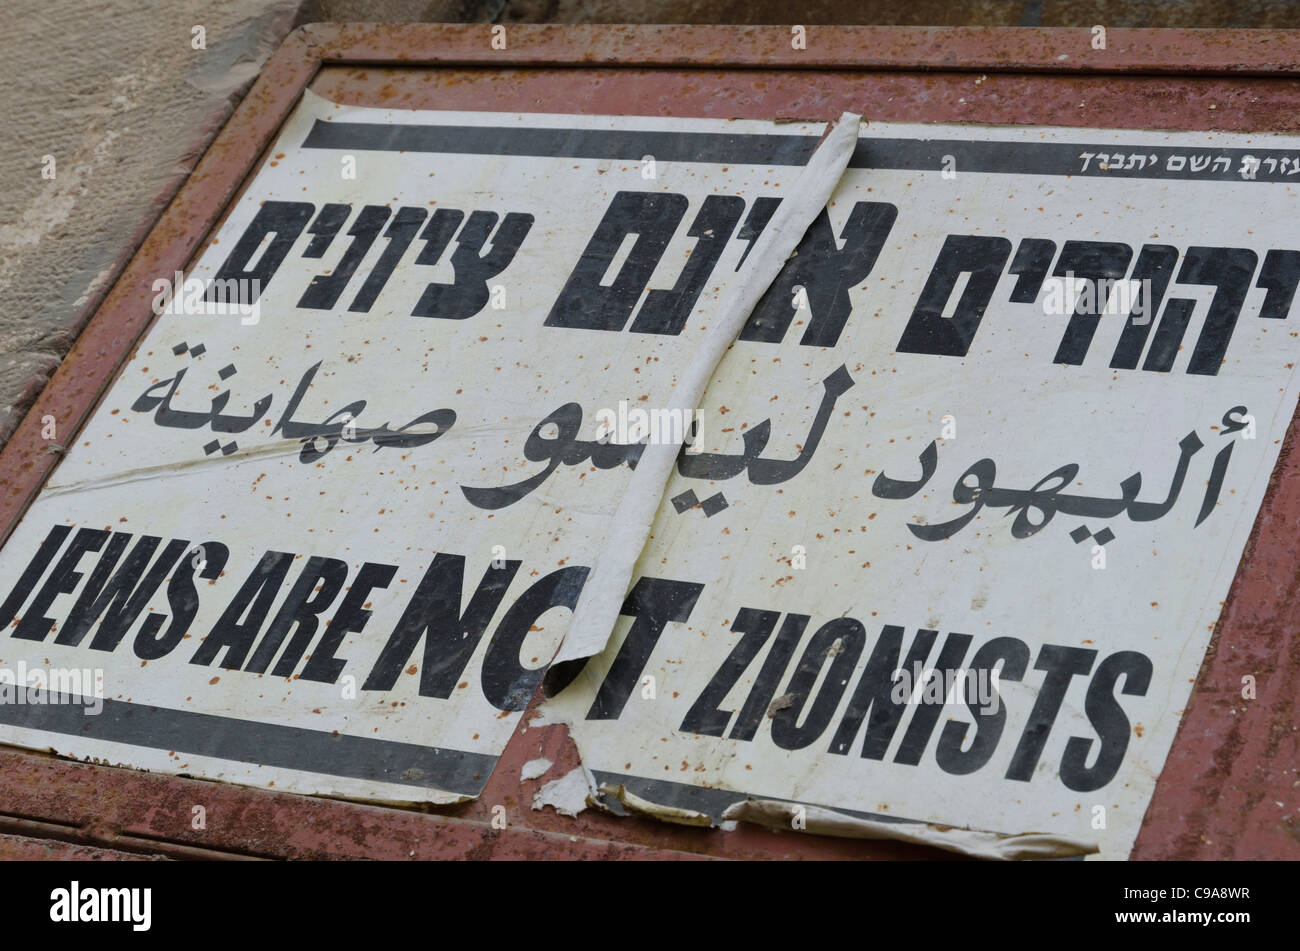 poster in hebrew in the street. Jews are not zionists. mea shearim. israel - Stock Image